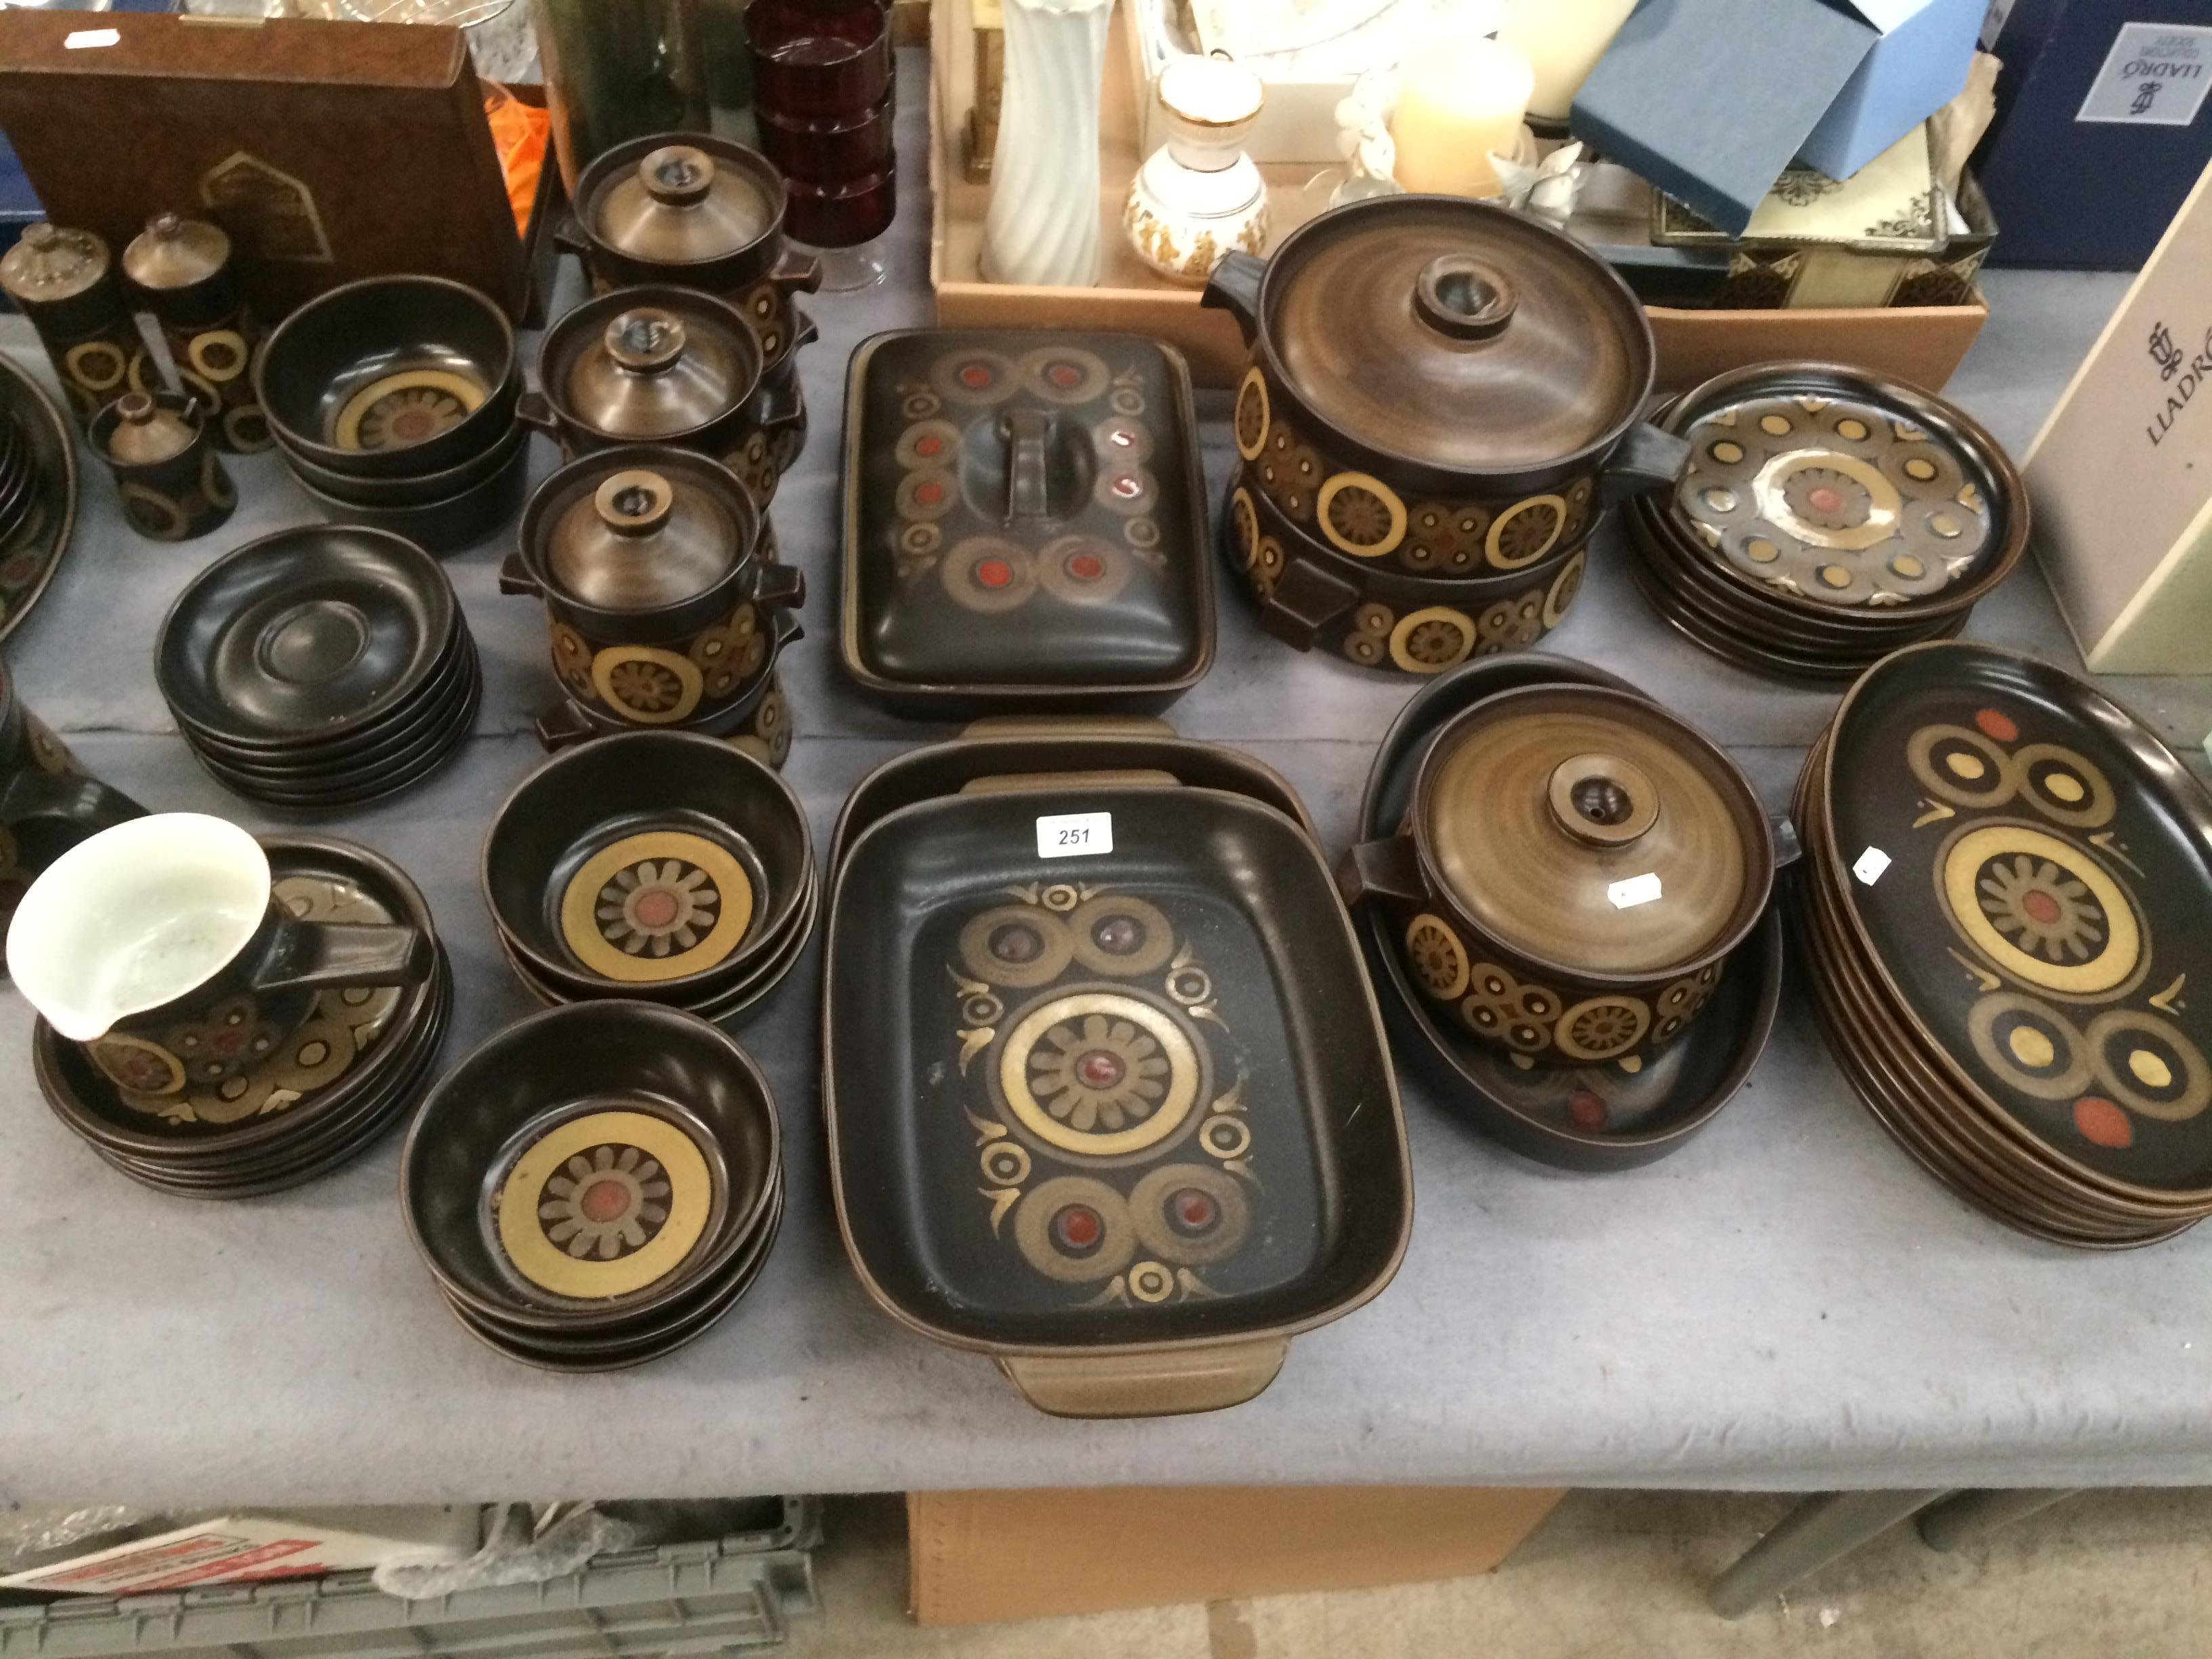 Lot 251 - An extensive collection of Denby Arabesque tableware (approximately 68 pieces) - dishes, tureens,